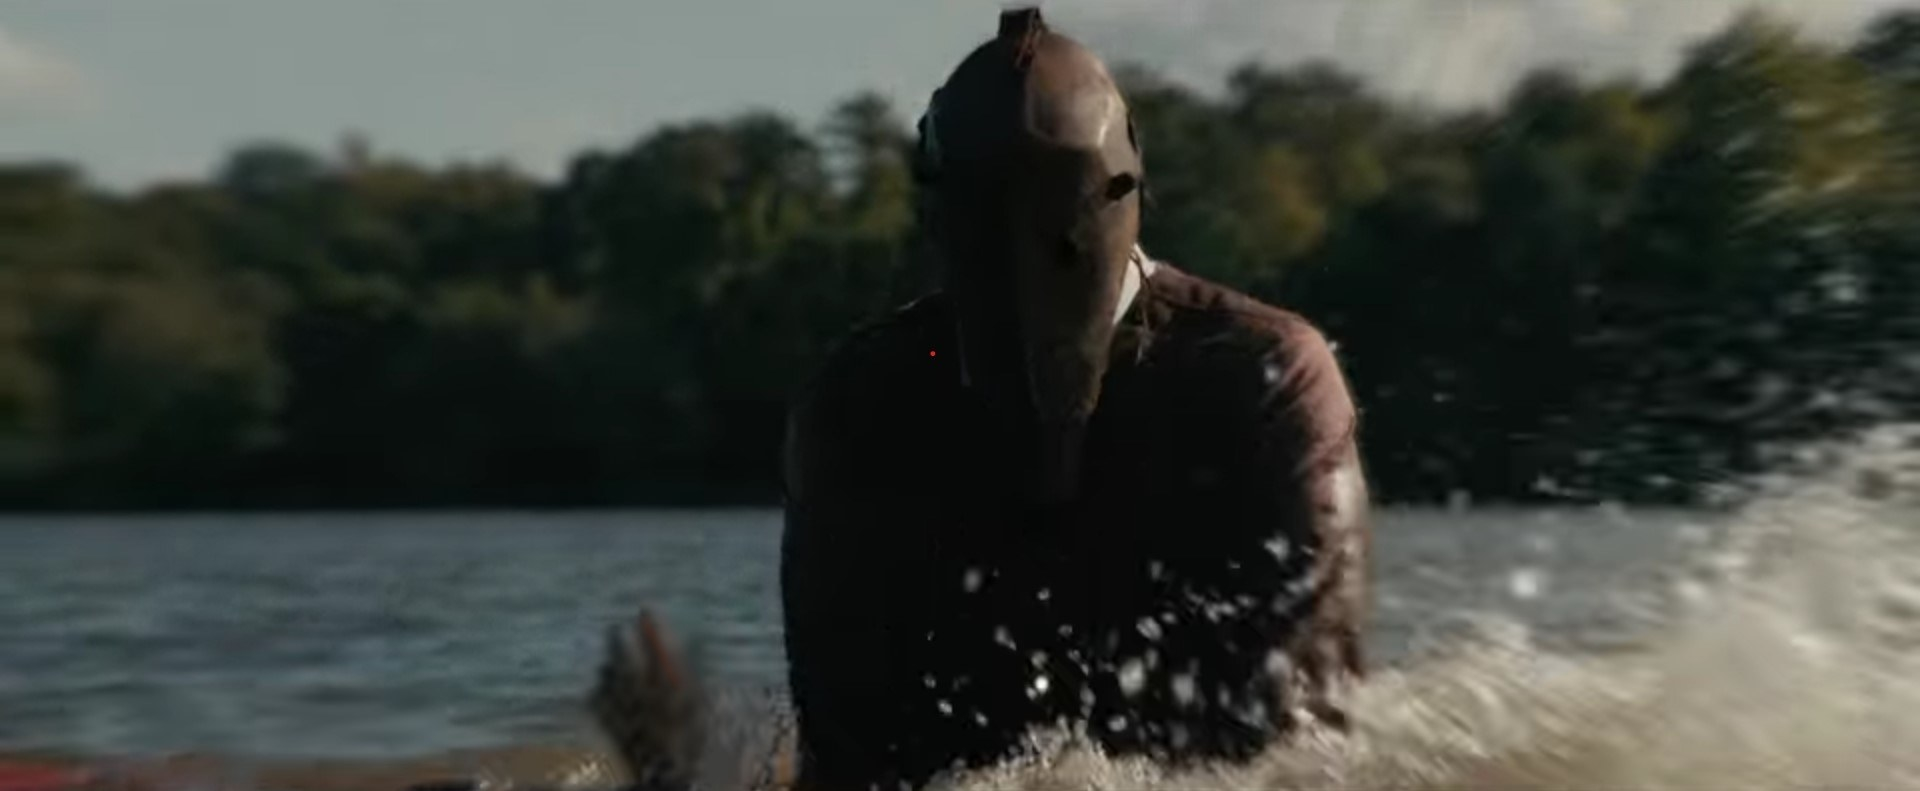 The Grifter in water